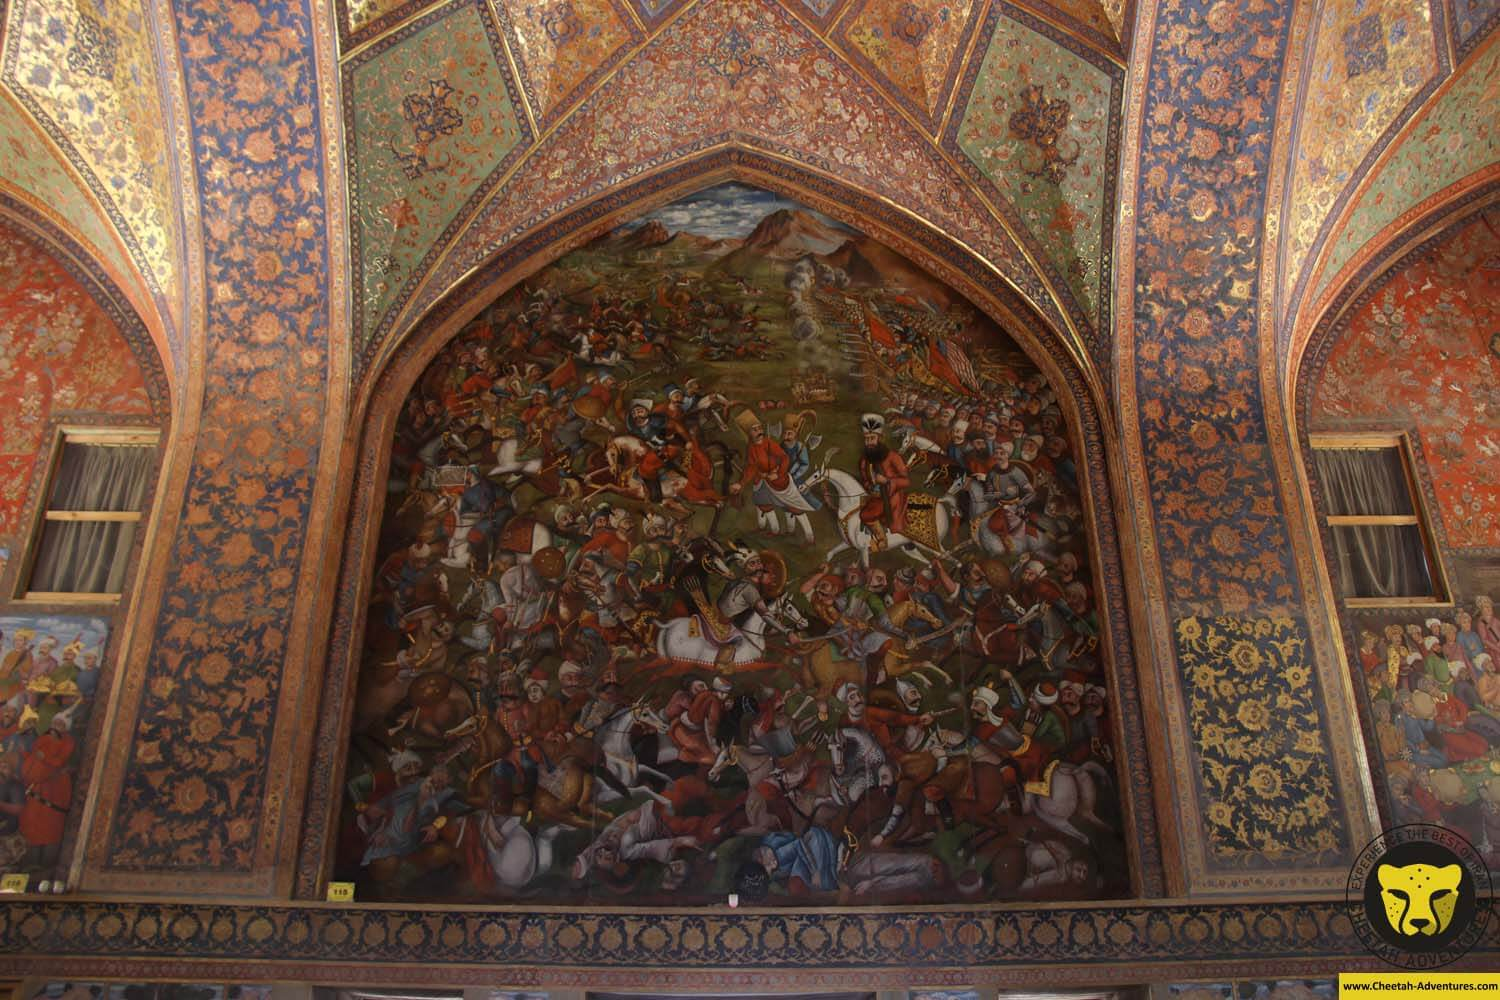 Painting on the walls of Chehel Sotun Palace, Isfahan, Iran Tour